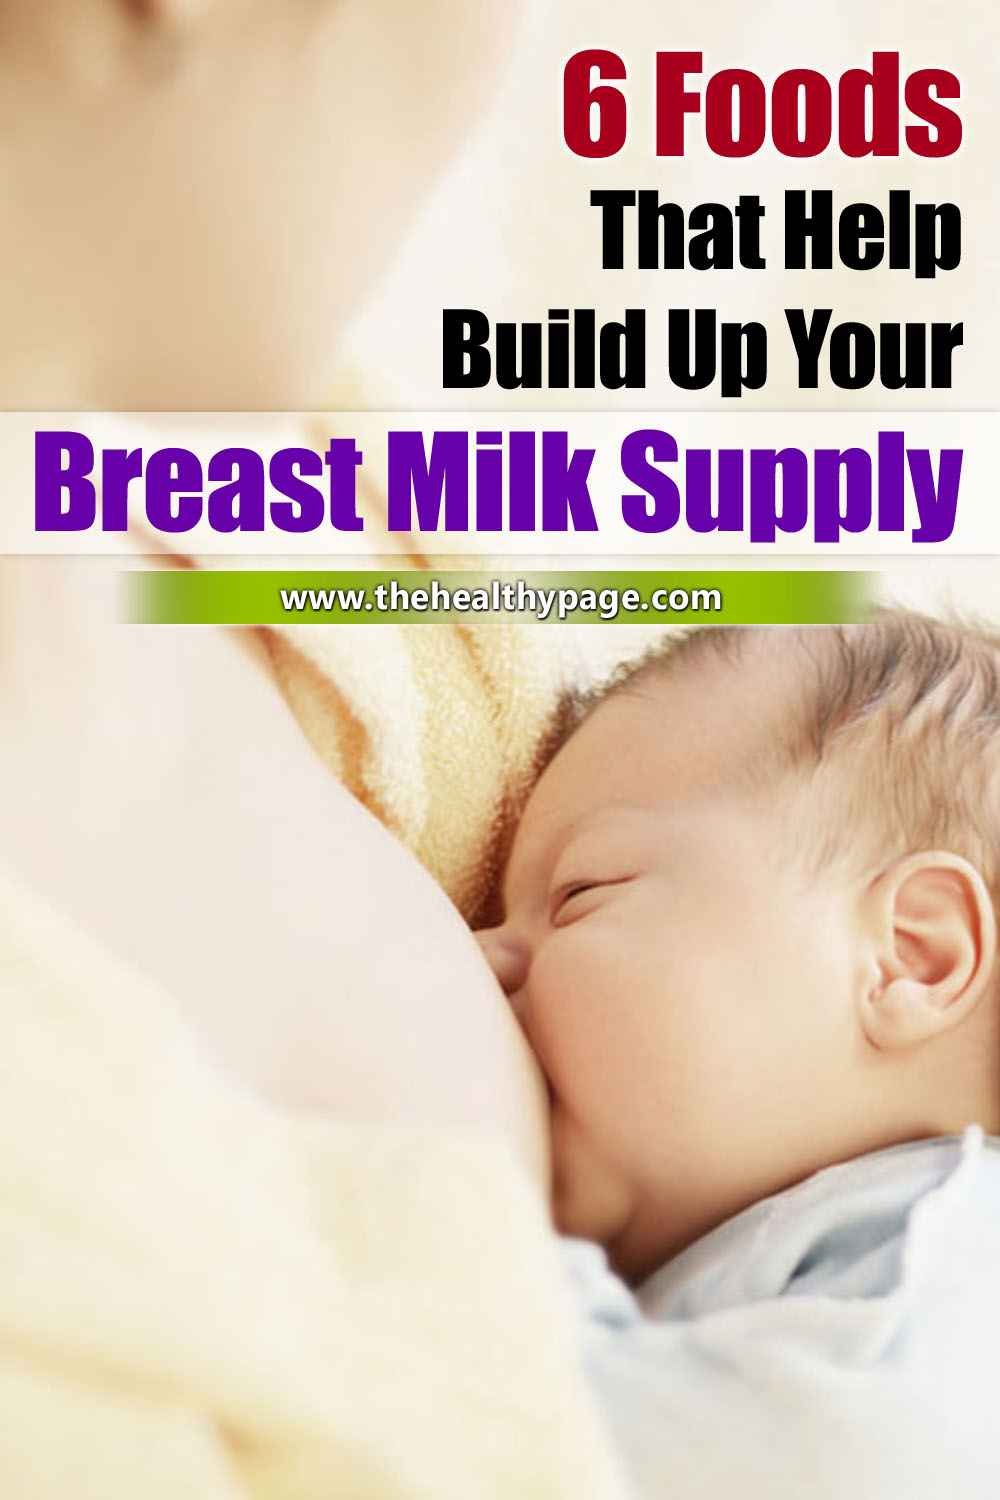 6 Foods That Help Build Up Your Breast Milk Supply